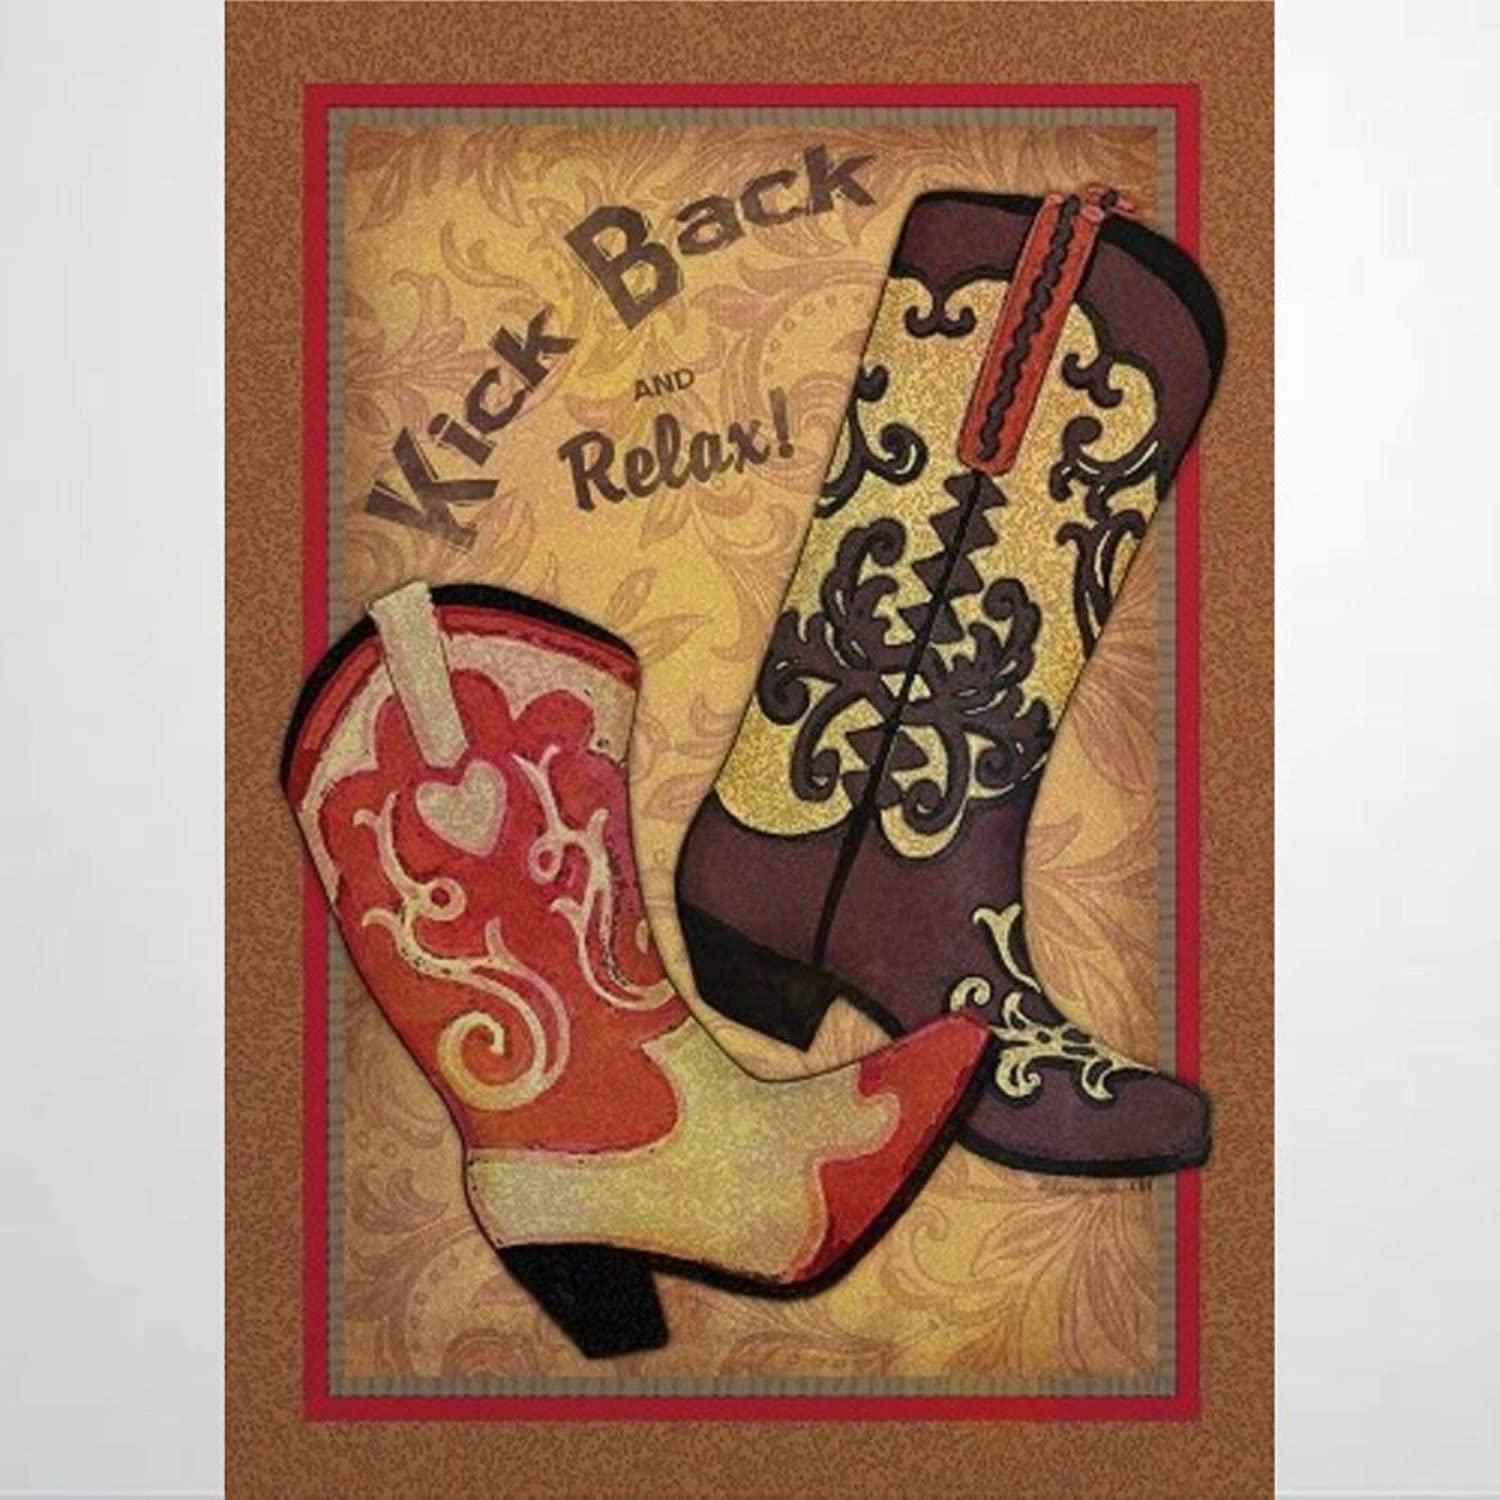 BYRON HOYLE Country Cowboy Boots Garden Flag Decorative Holiday Seasonal Outdoor Weather Resistant Double Sided Print Farmhouse Flag Yard Patio Lawn Garden Decoration 12 x 18 Inch478188